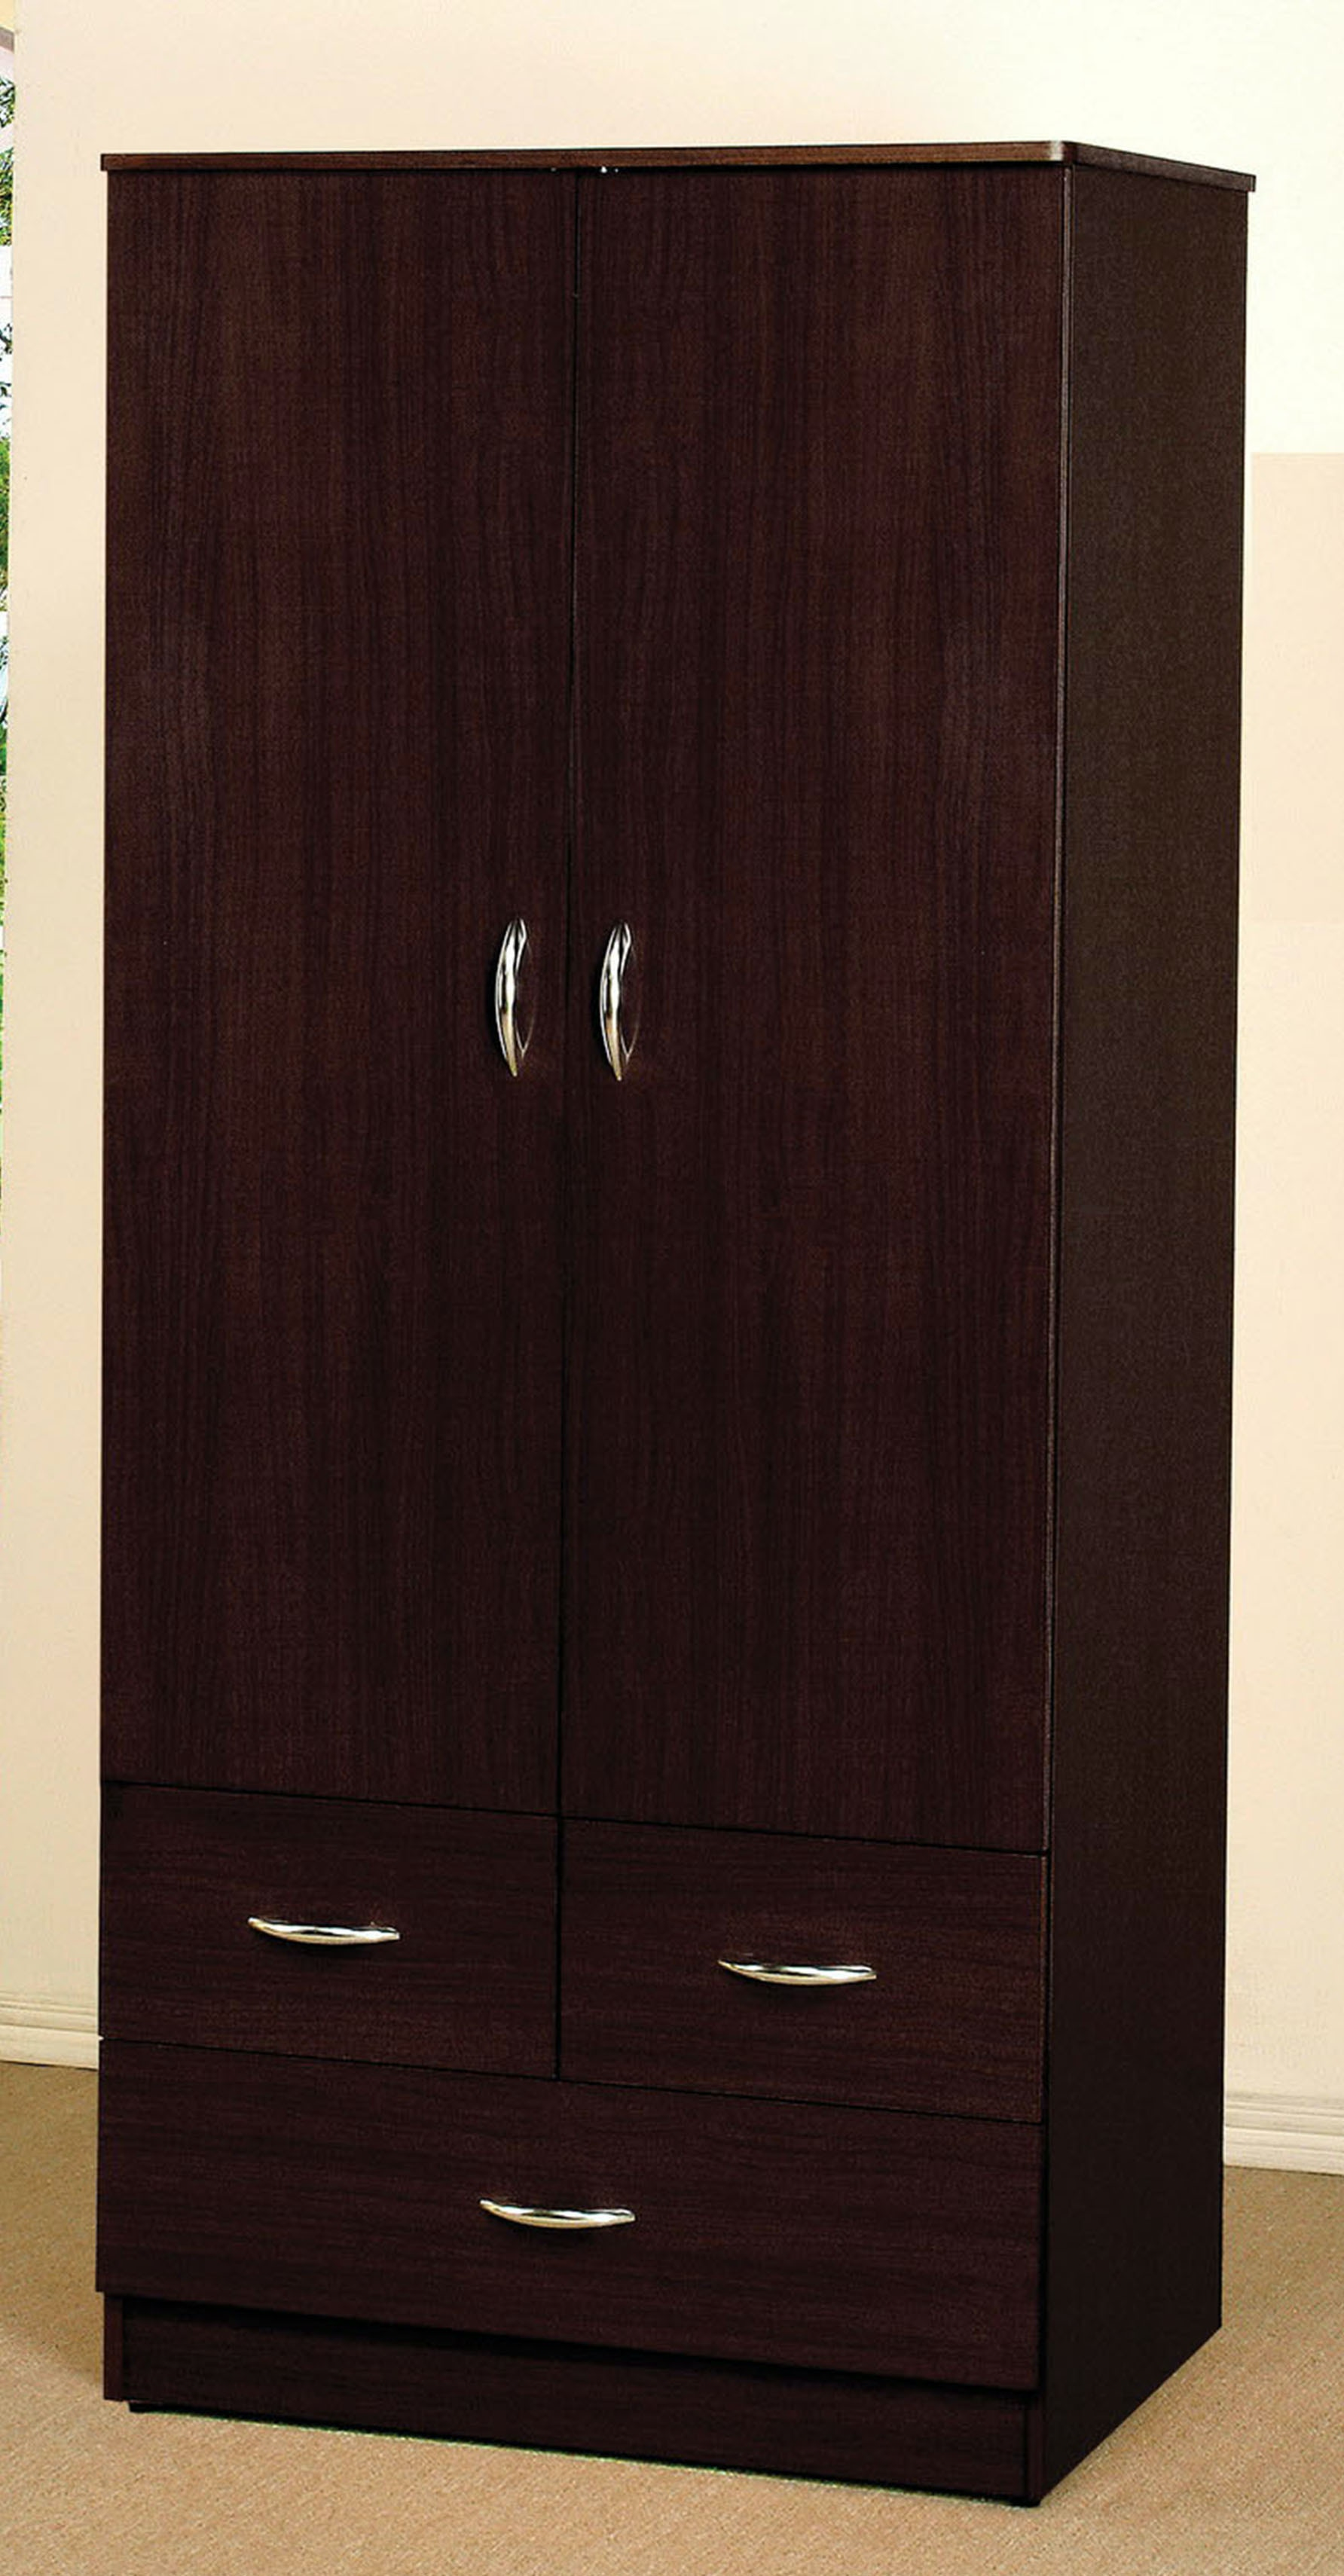 Acme Furniture Bedroom Wardrobe 02241 At Home Design Center